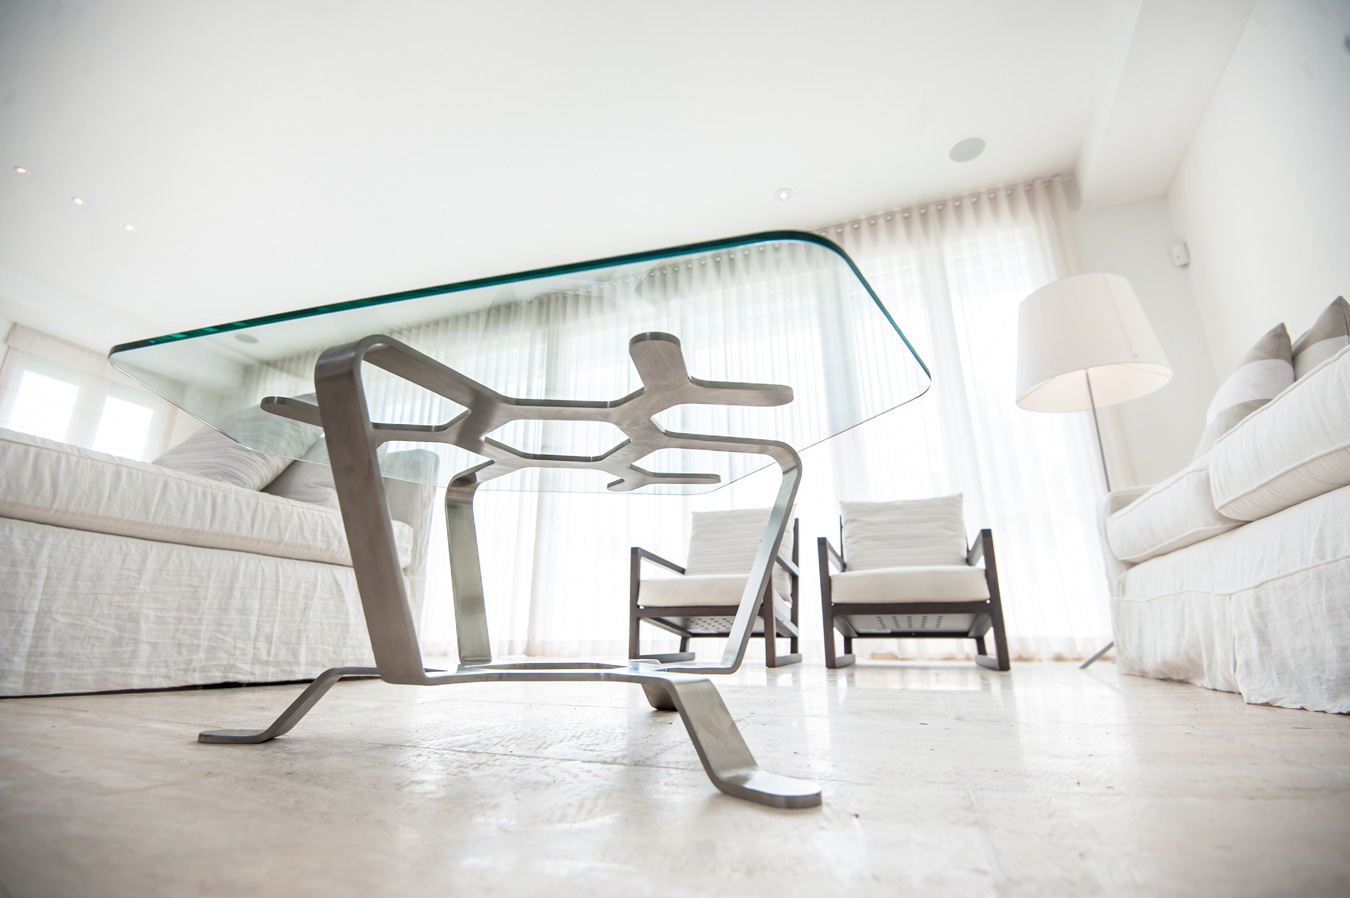 Dendrone Table, Iron Award. Stainless steel and glass. 2014